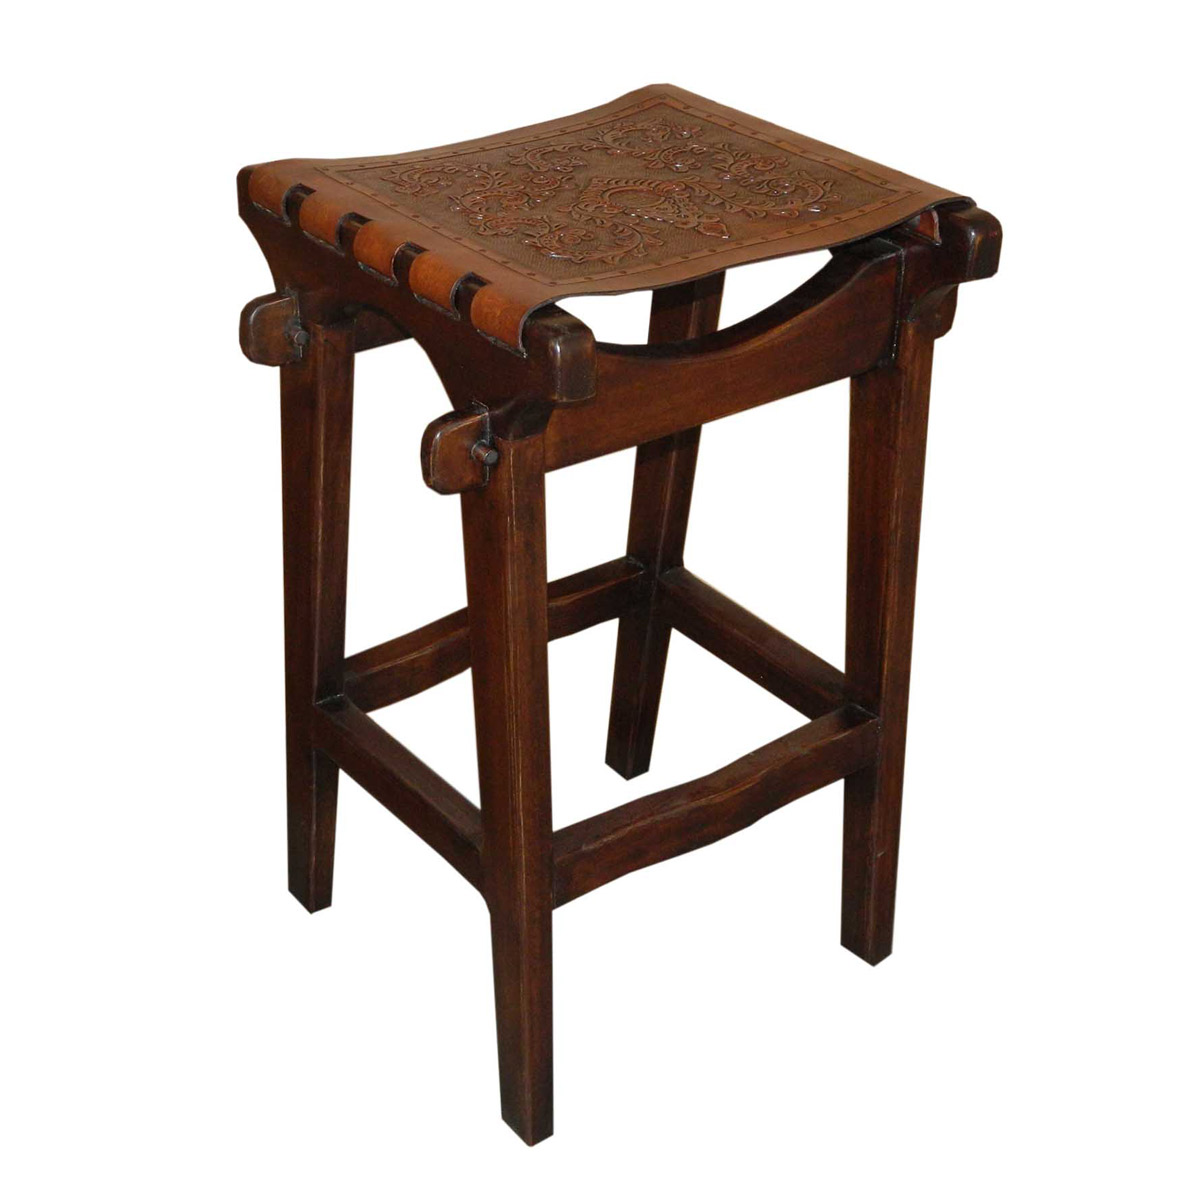 Santa Fe Barstool with Colonial Tooled Leather Seat